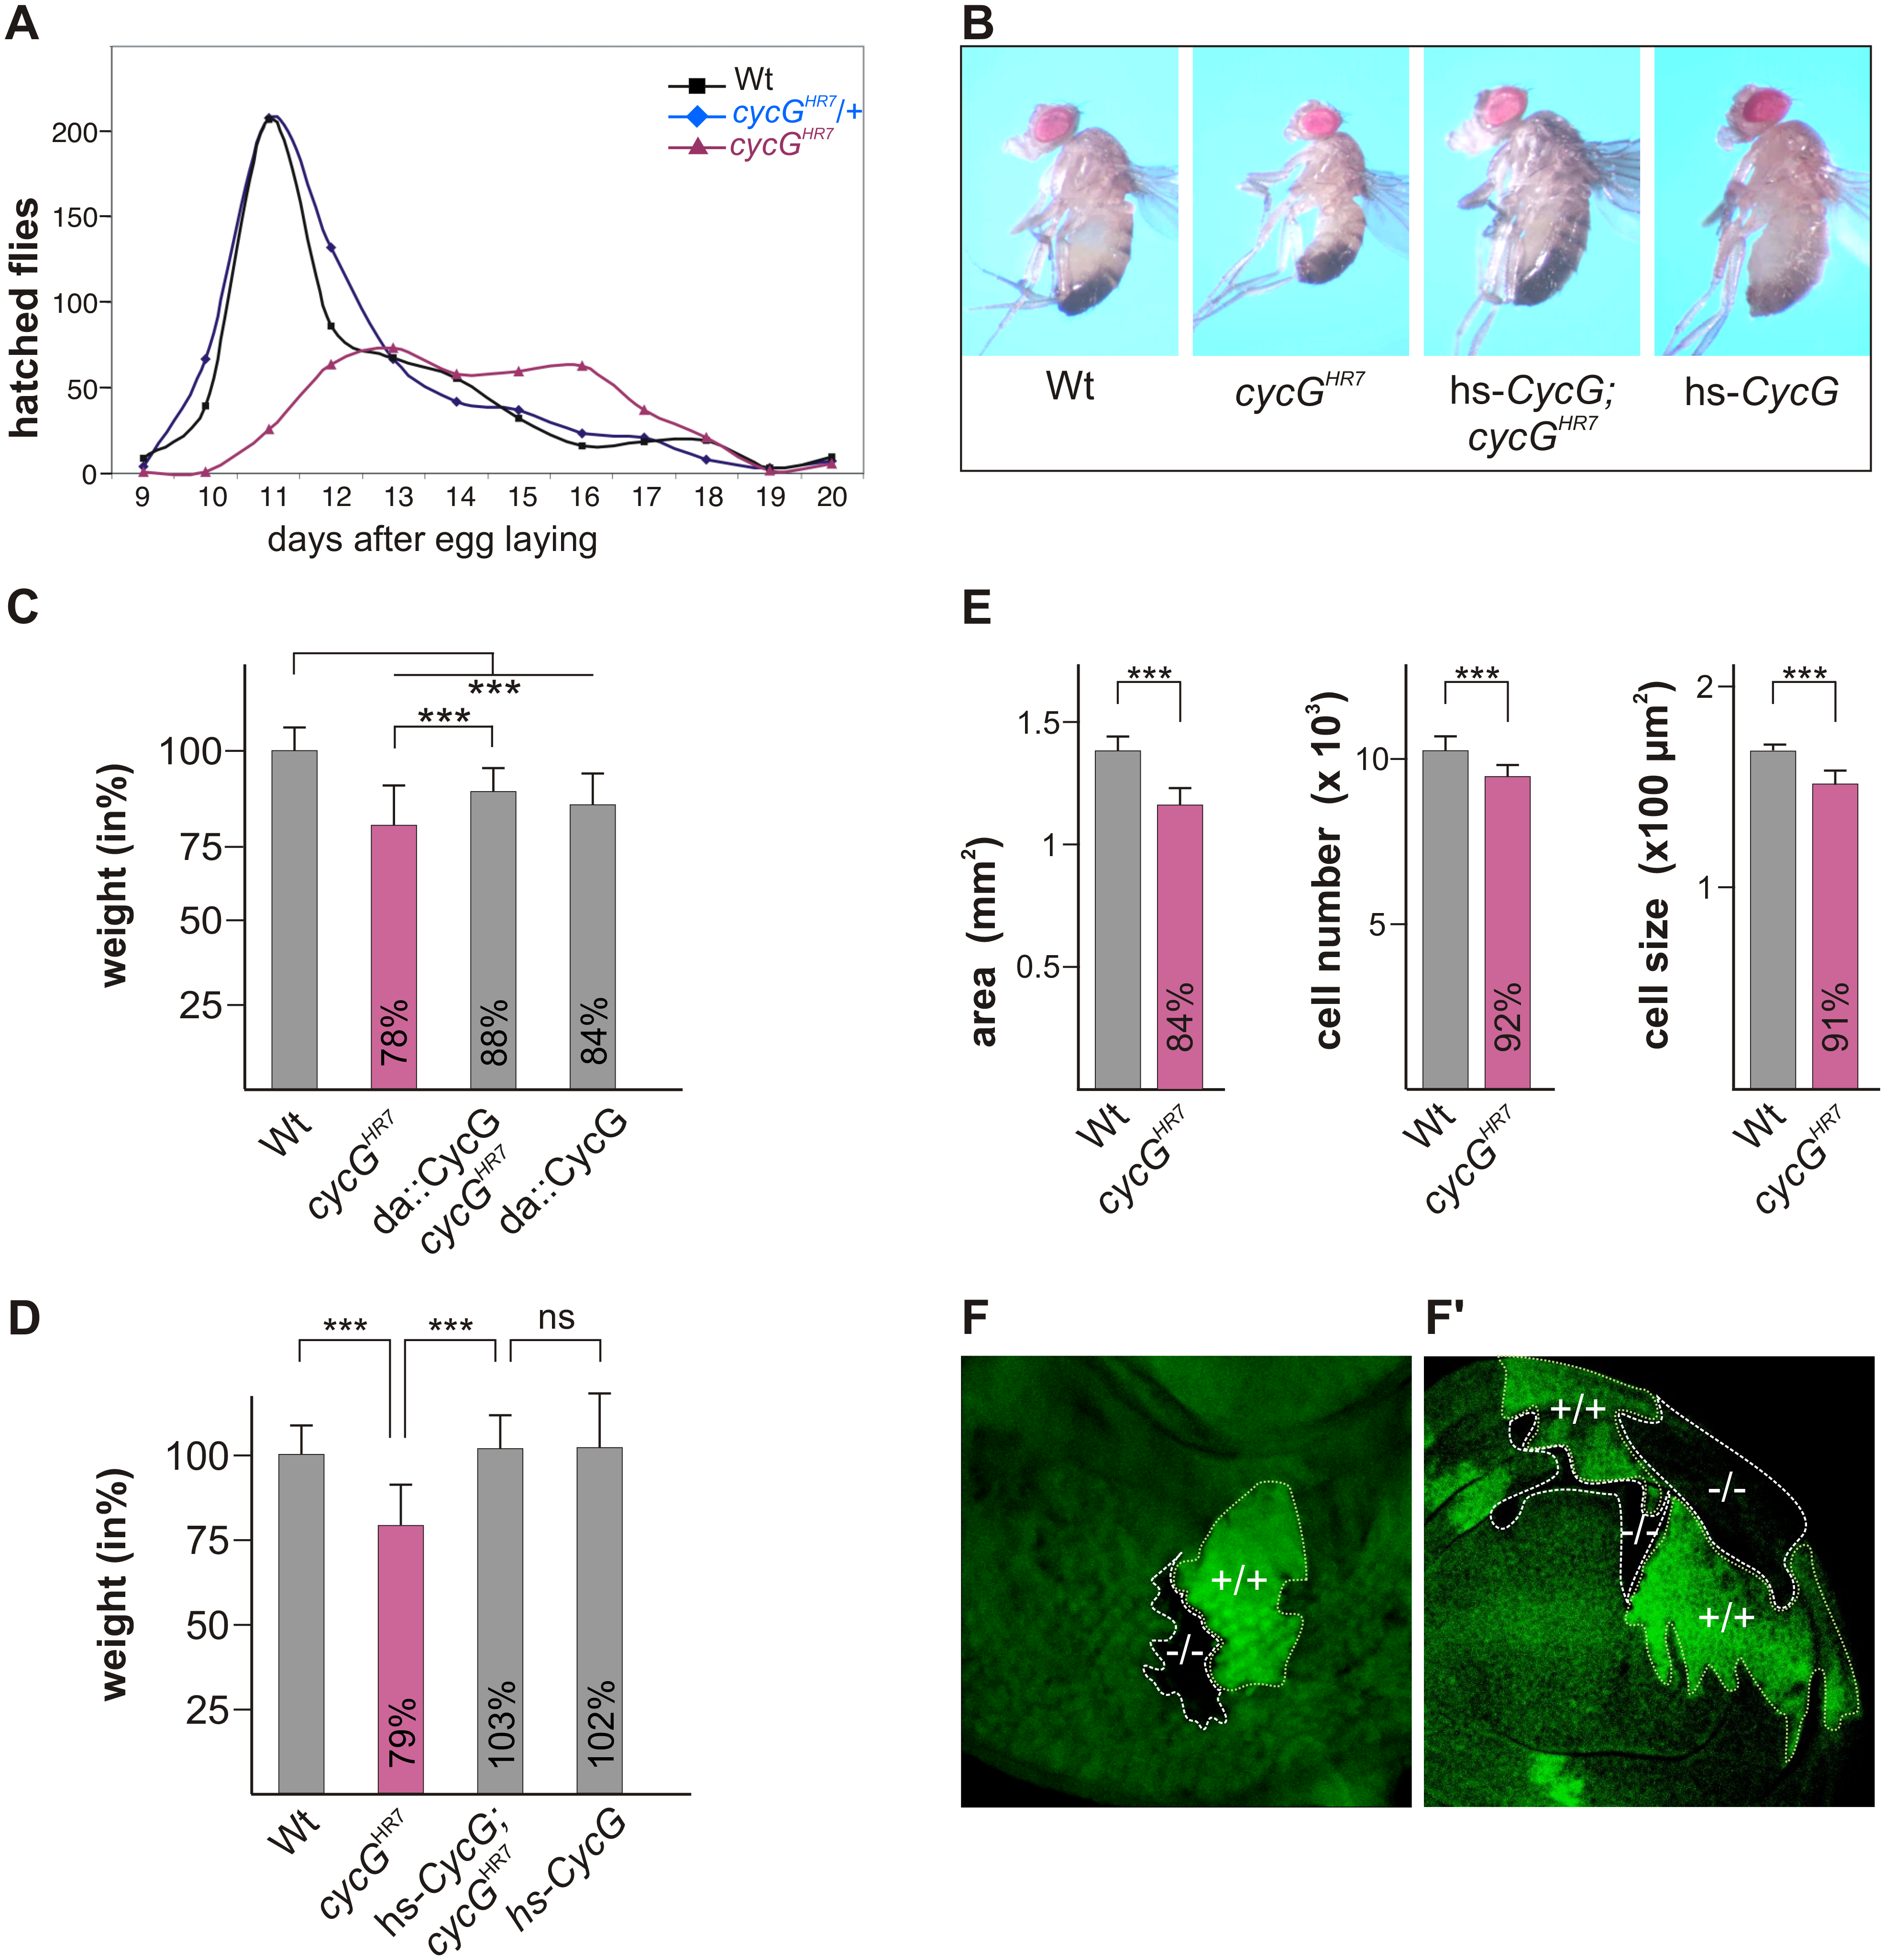 Growth and weight deficits in <i>cycG</i><sup><i>HR7</i></sup> mutant animals.